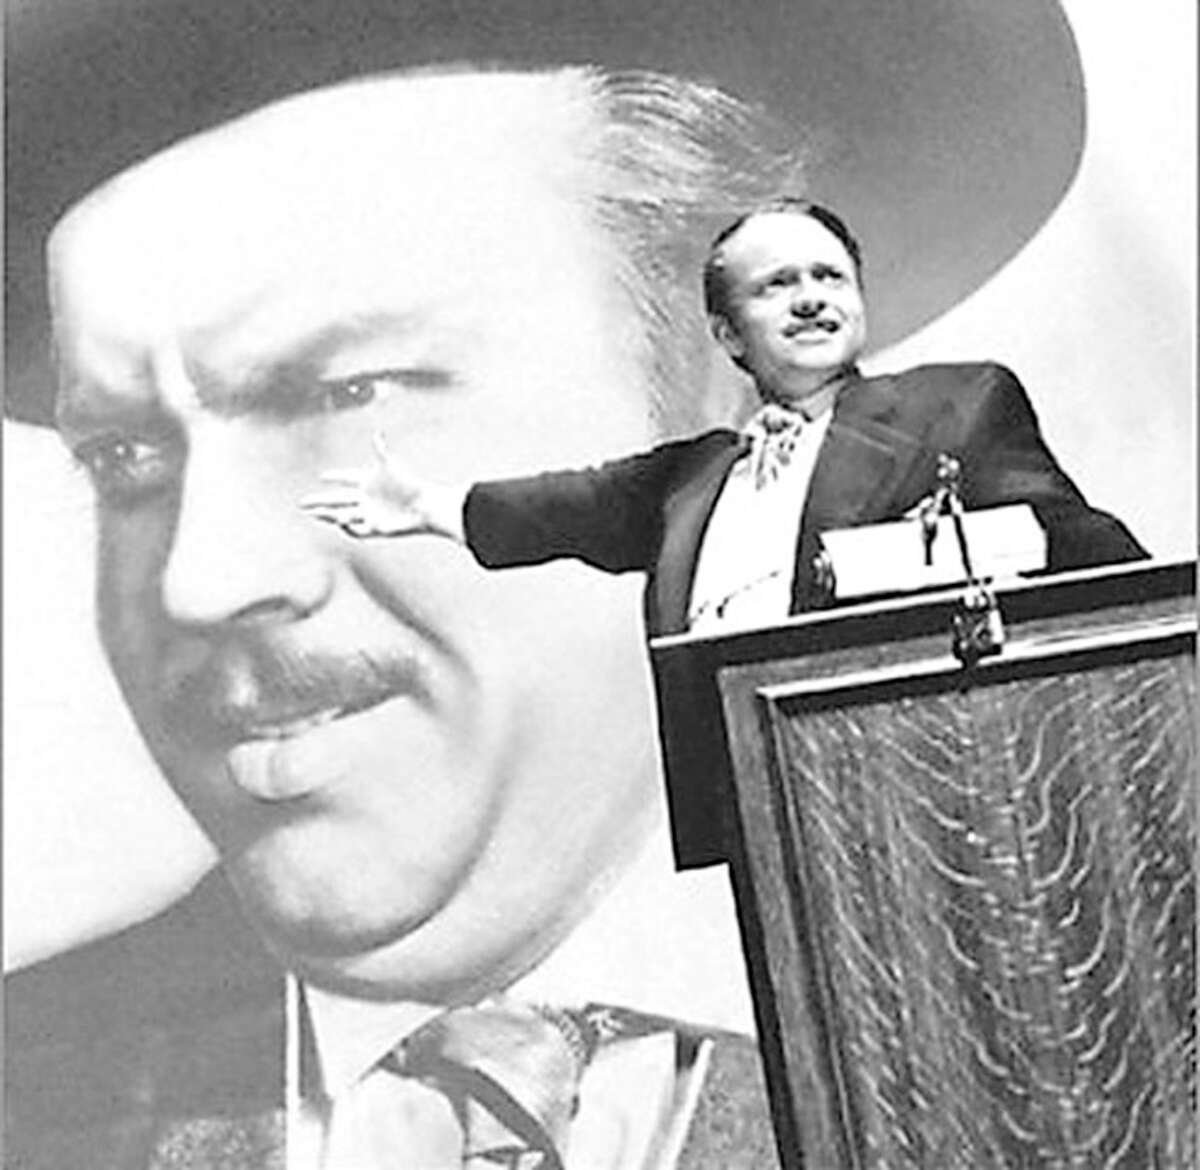 Citizen Kane (1941) When newspaper mogul Charles Foster Kane dies, his mysterious last word is